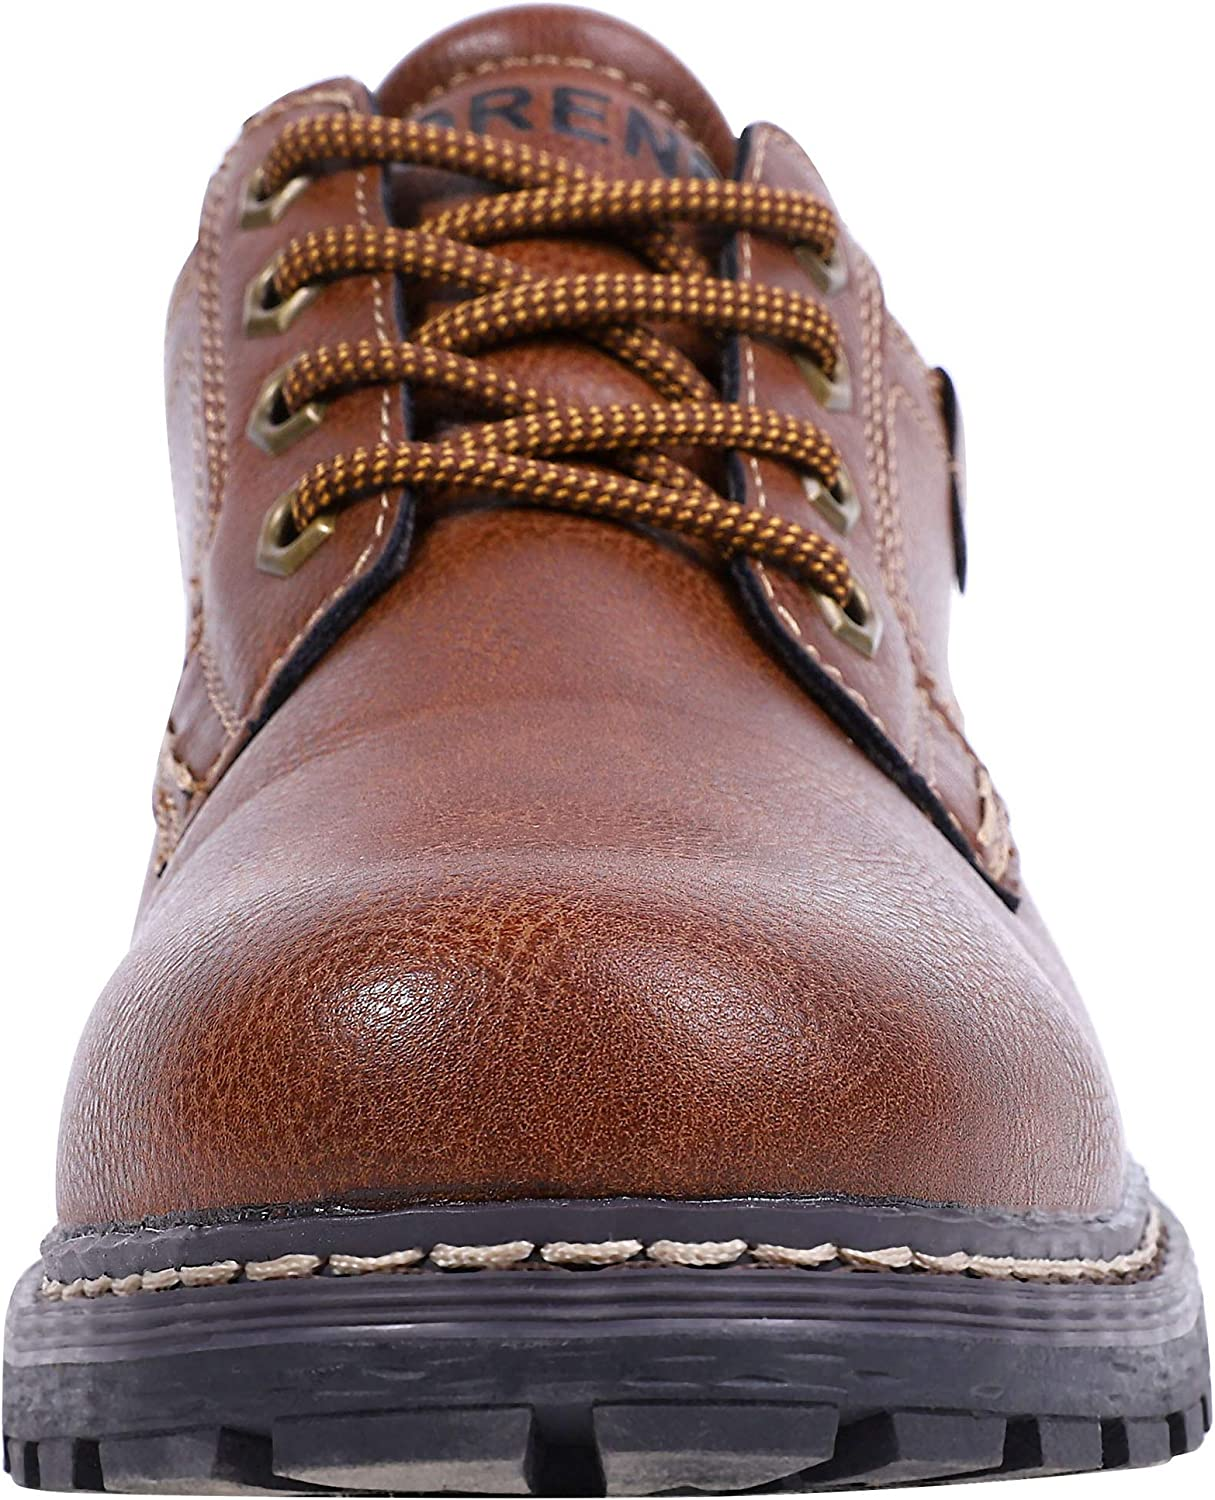 MORENDL Men/'s Business Causal Walk Shoes Oxford Anti-Slip Rugged Outsole All-Weather Comfortable Daily Wear